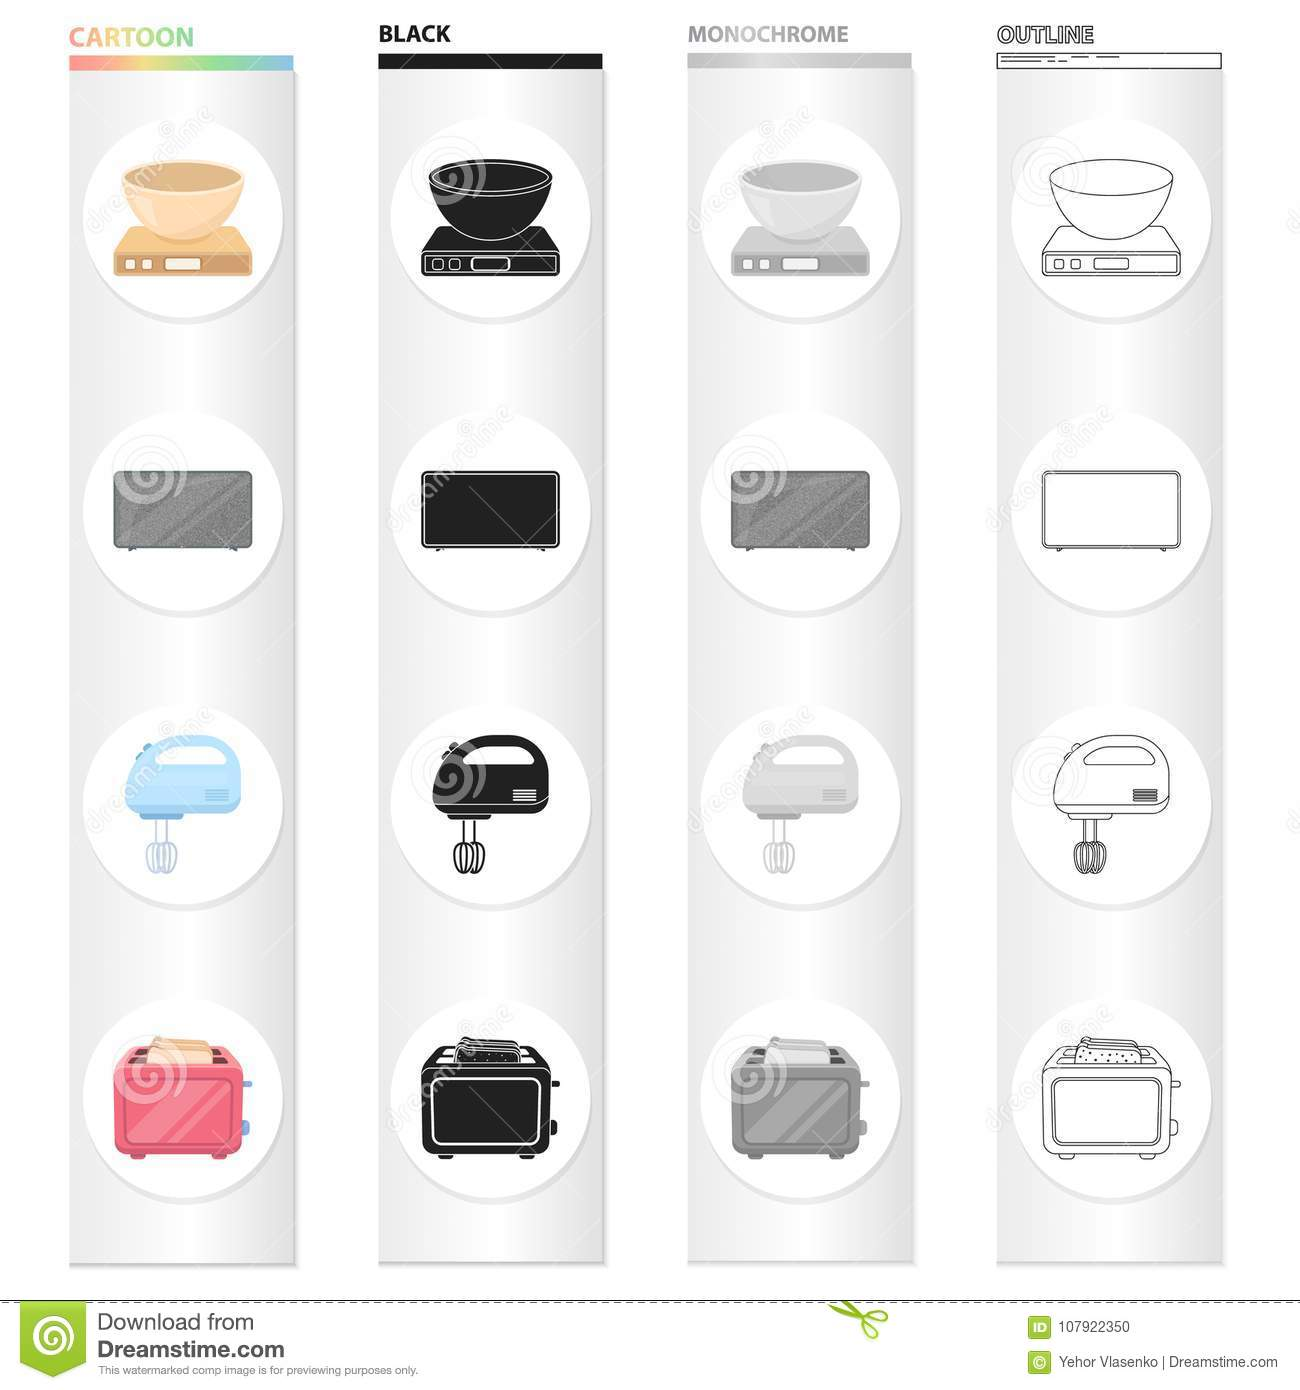 Types Of Household Appliances Cartoon Black Monochrome Outline Icons ...